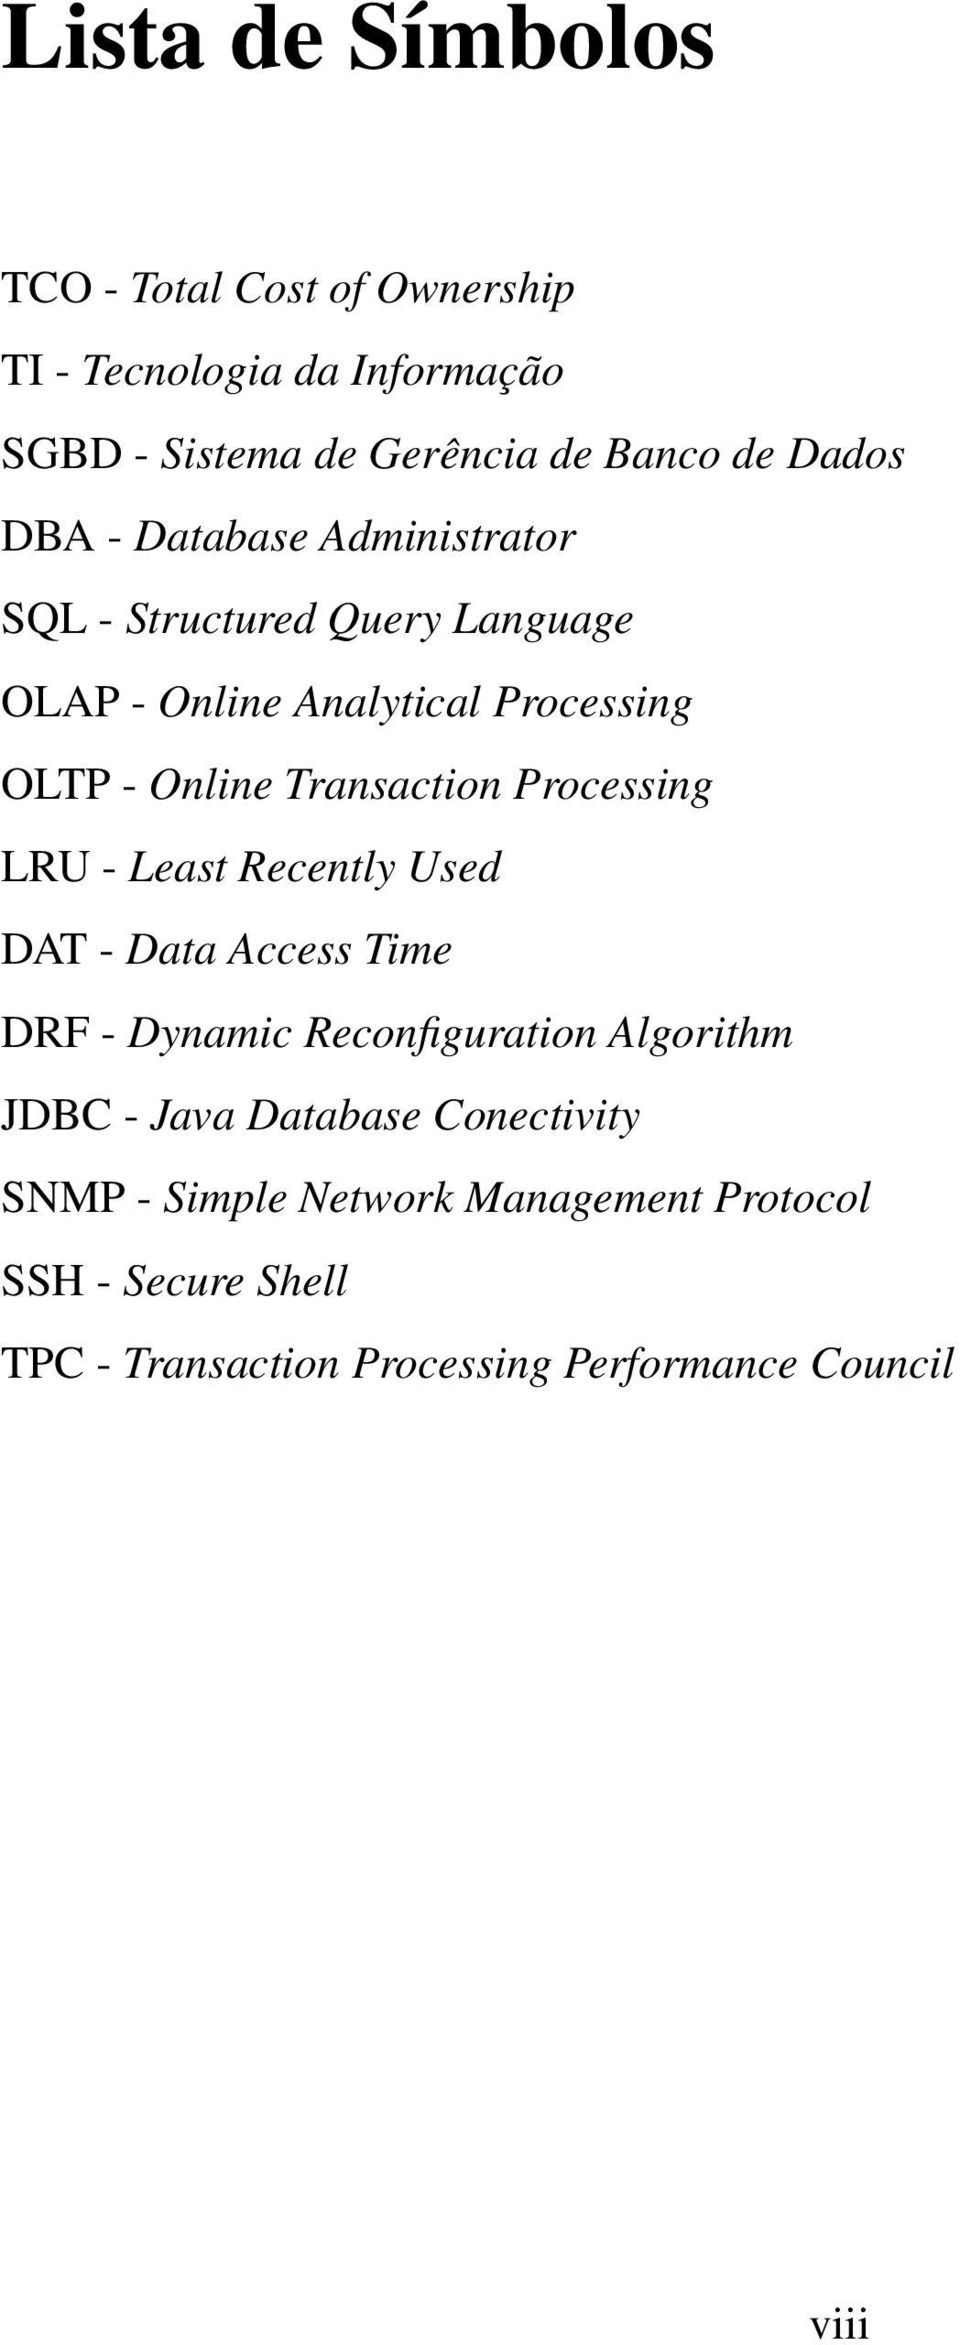 Processing LRU - Least Recently Used DAT - Data Access Time DRF - Dynamic Reconfiguration Algorithm JDBC - Java Database